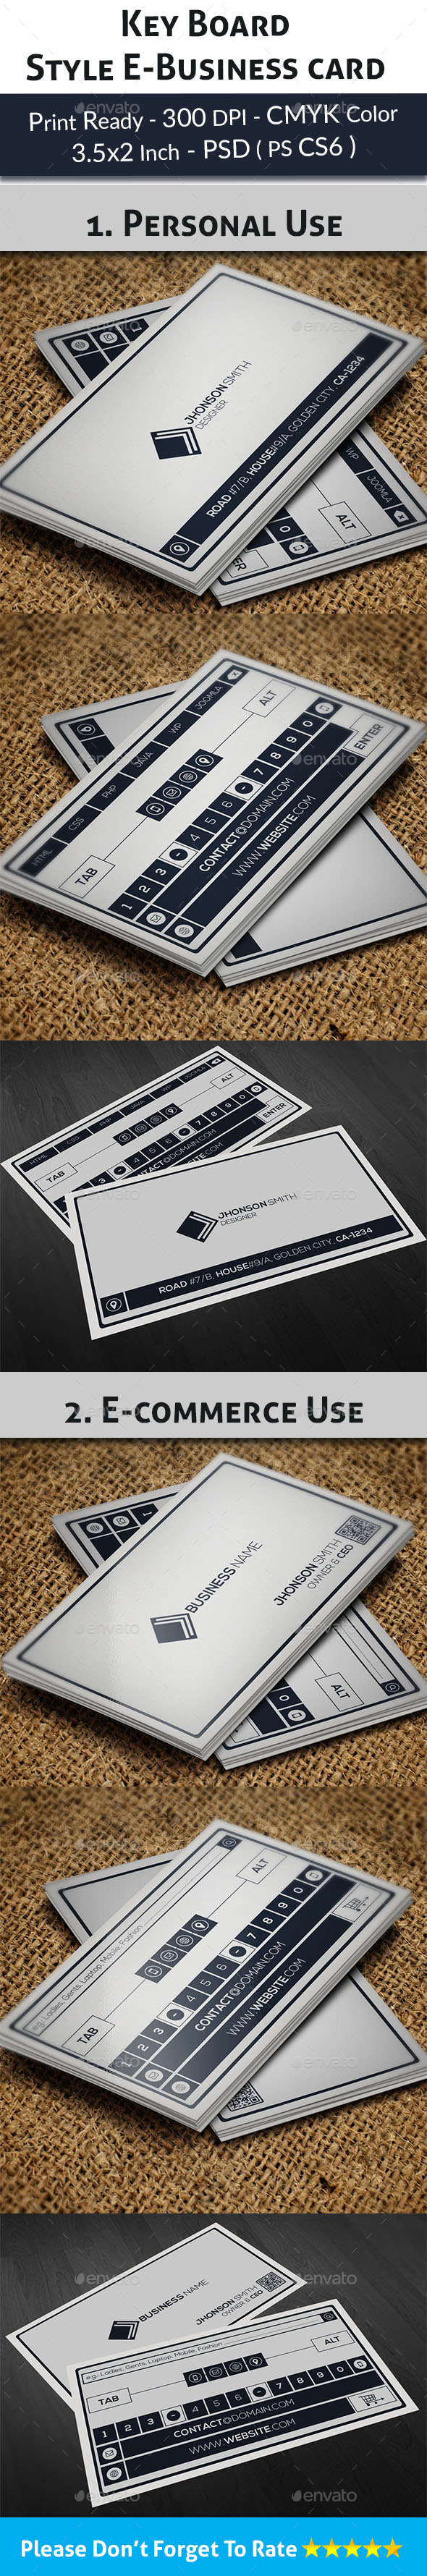 Key Board Style Business Card - Real Objects Business Cards